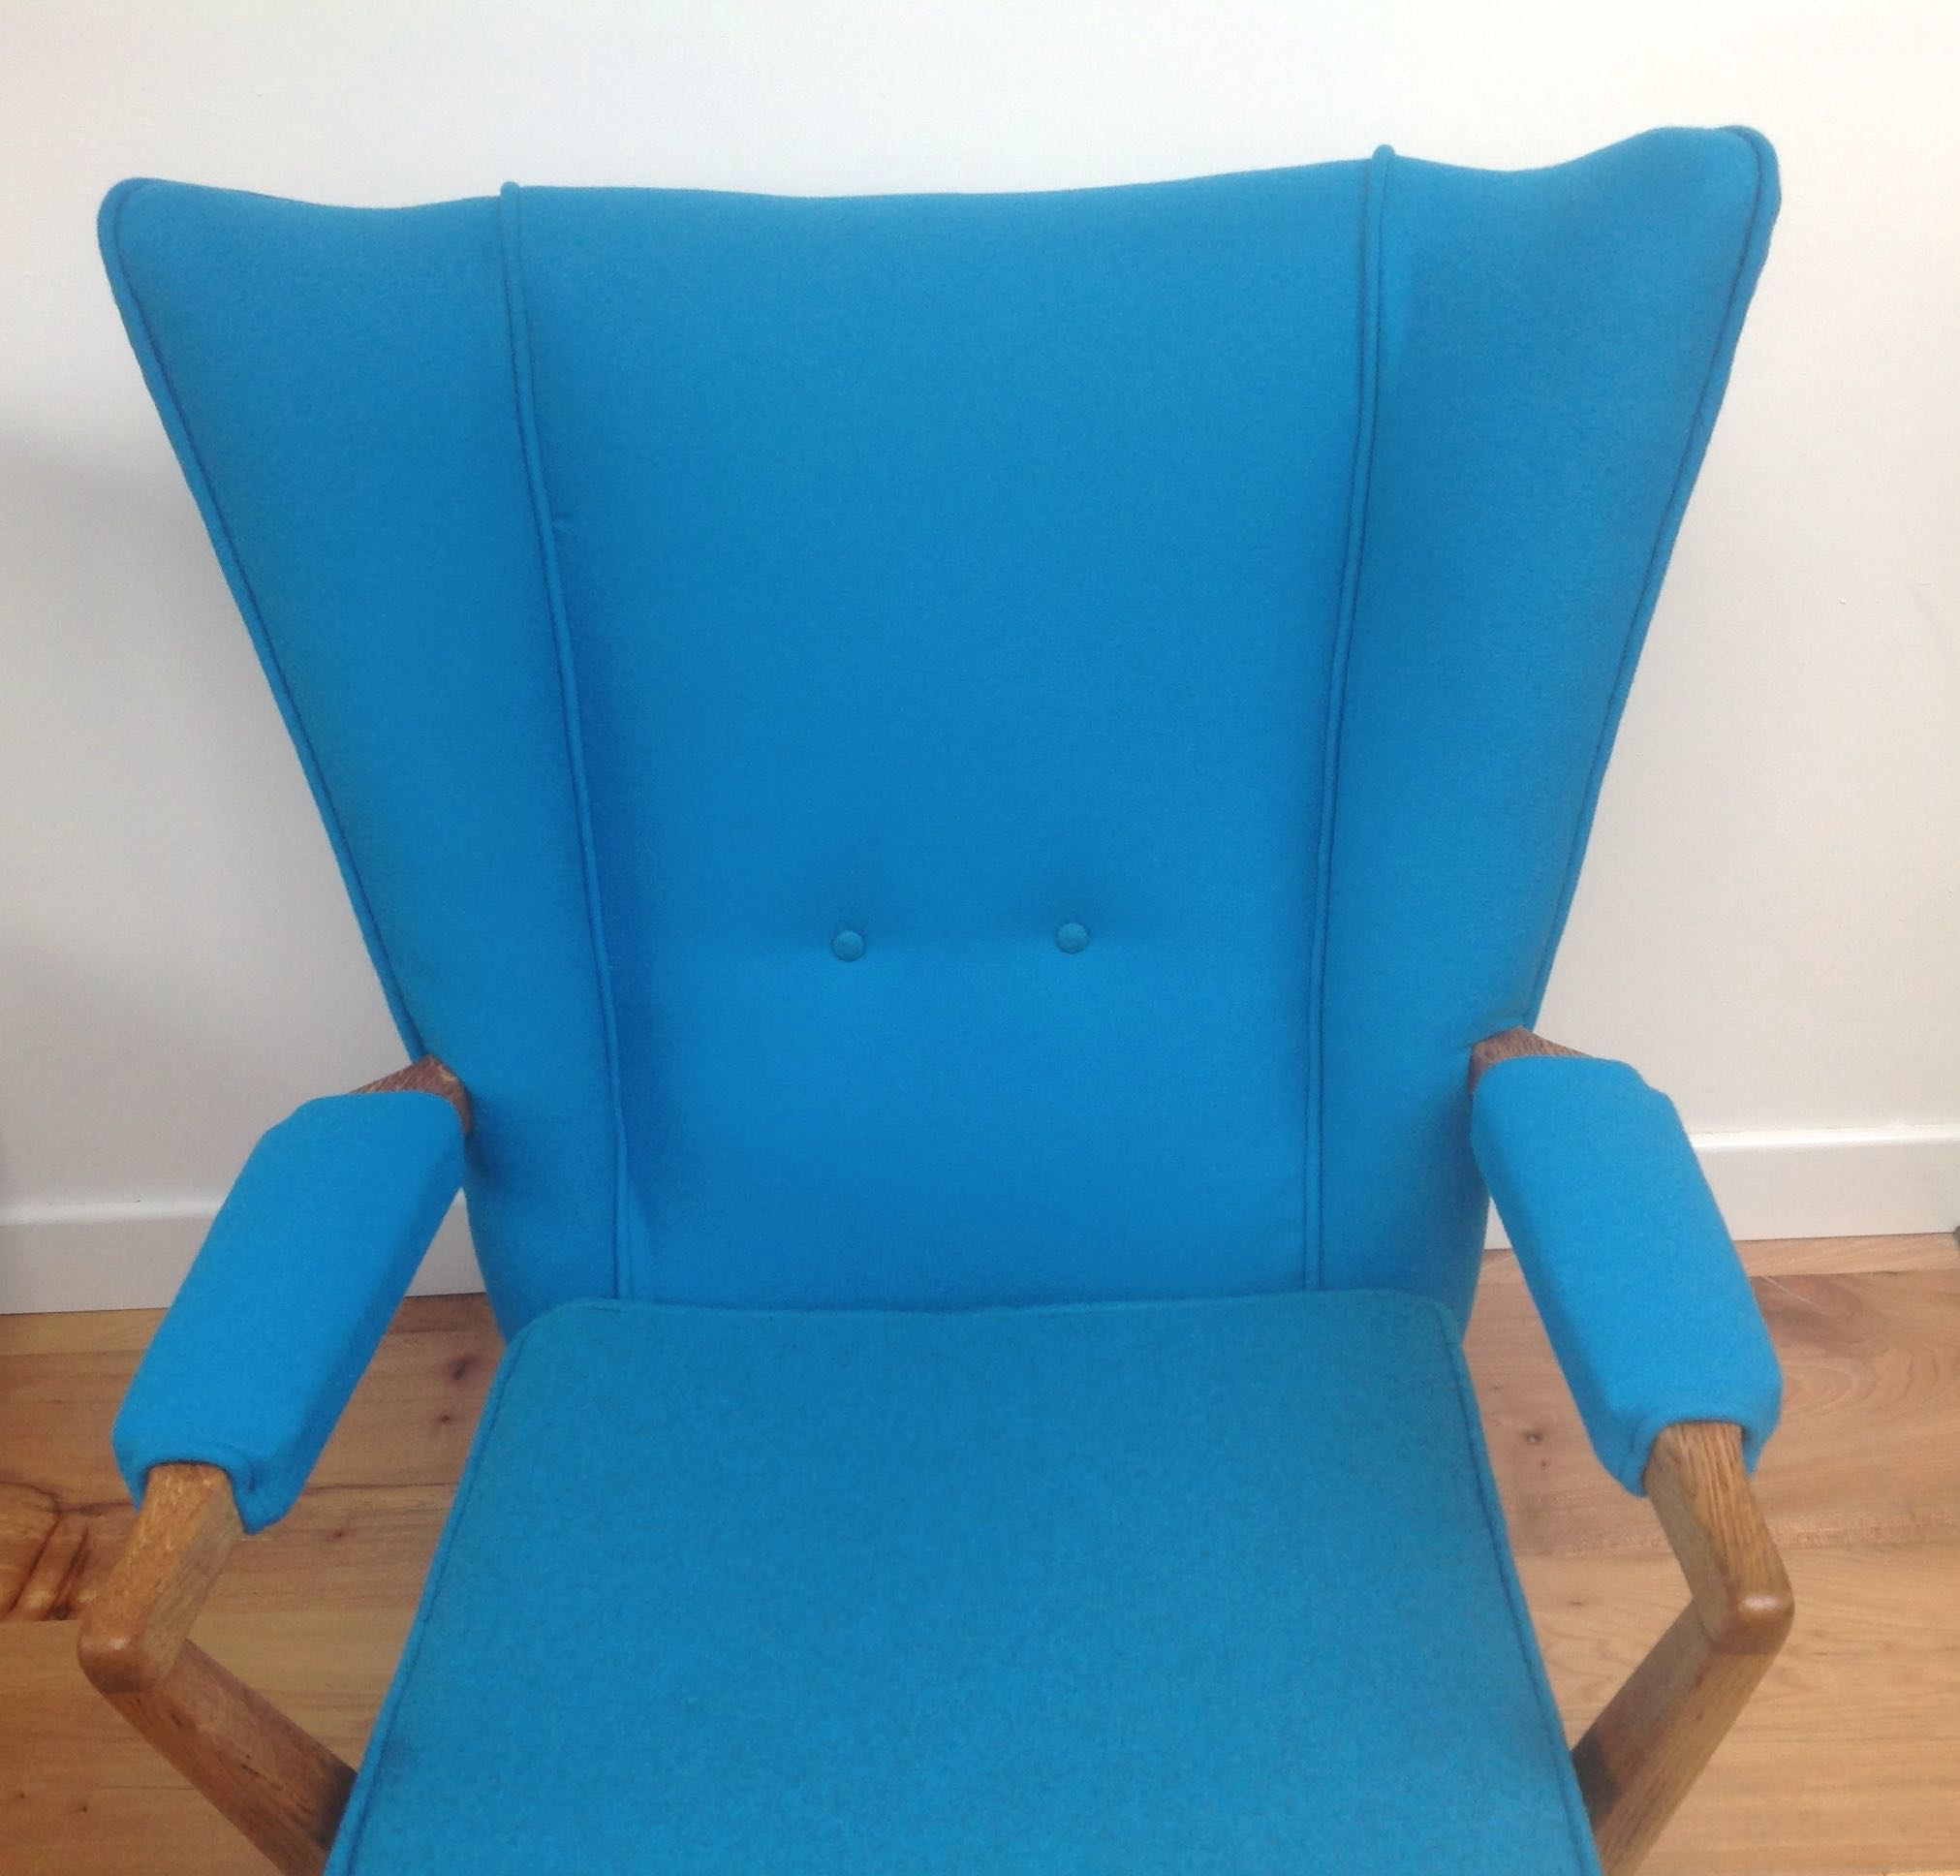 Vintage 1950s G-Plan Armchair - Maud ChairsMaud Chairs